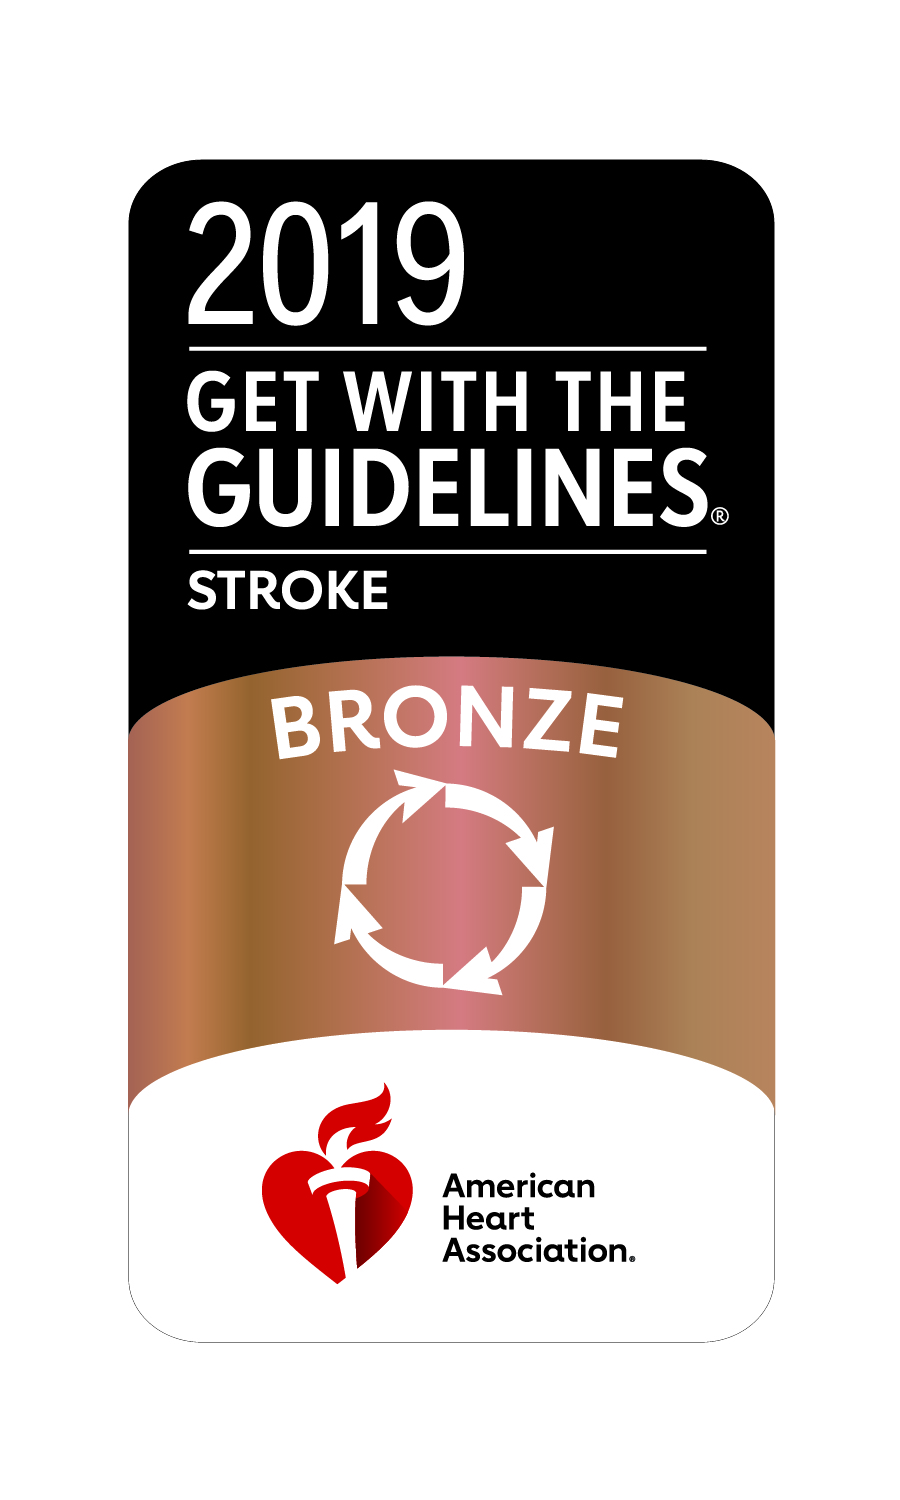 2019 Get With The Guidelines BRONZE